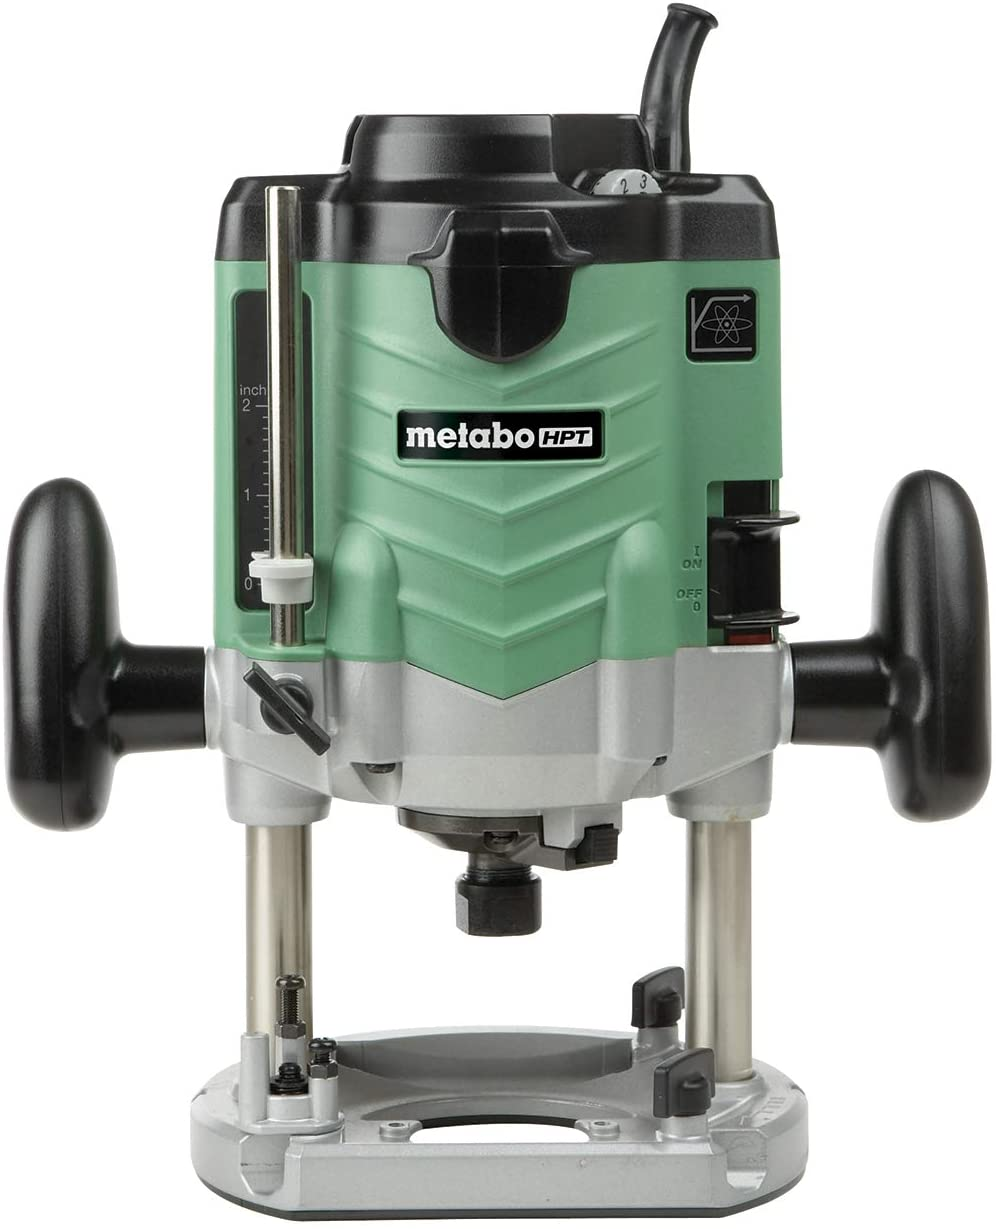 Metabo HPT M12VE Variable Speed Plunge Router